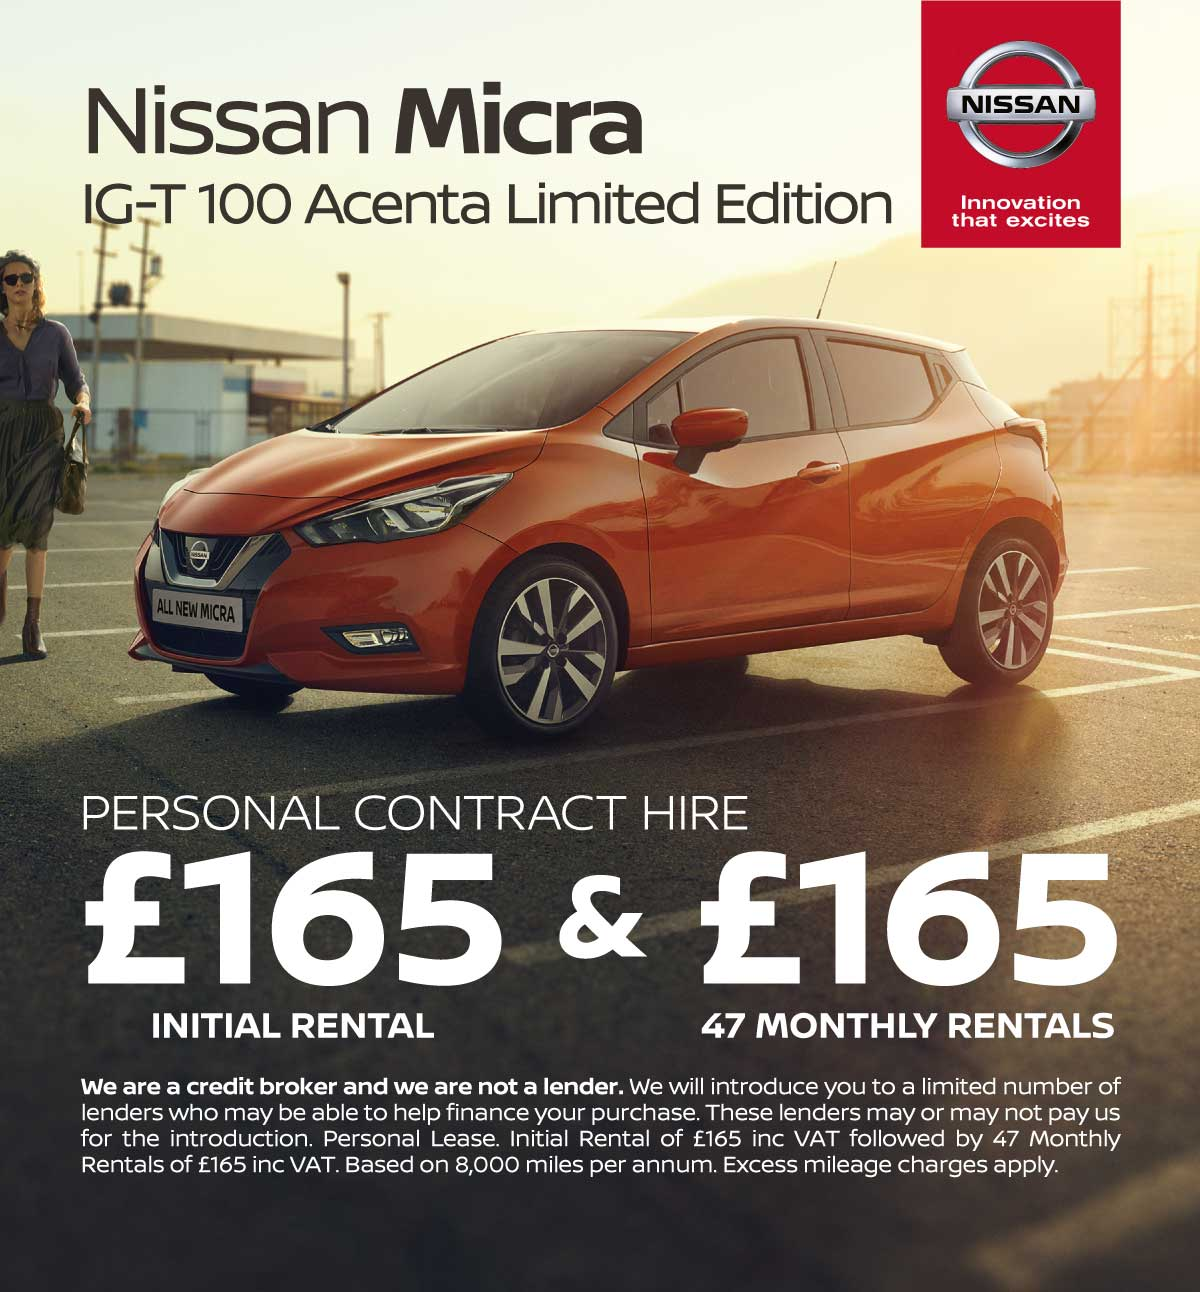 ( Nissan Micra) Nissan Micra 1.0 IG-T 100 Acenta Limited Edition Q4 151019 Banner 1